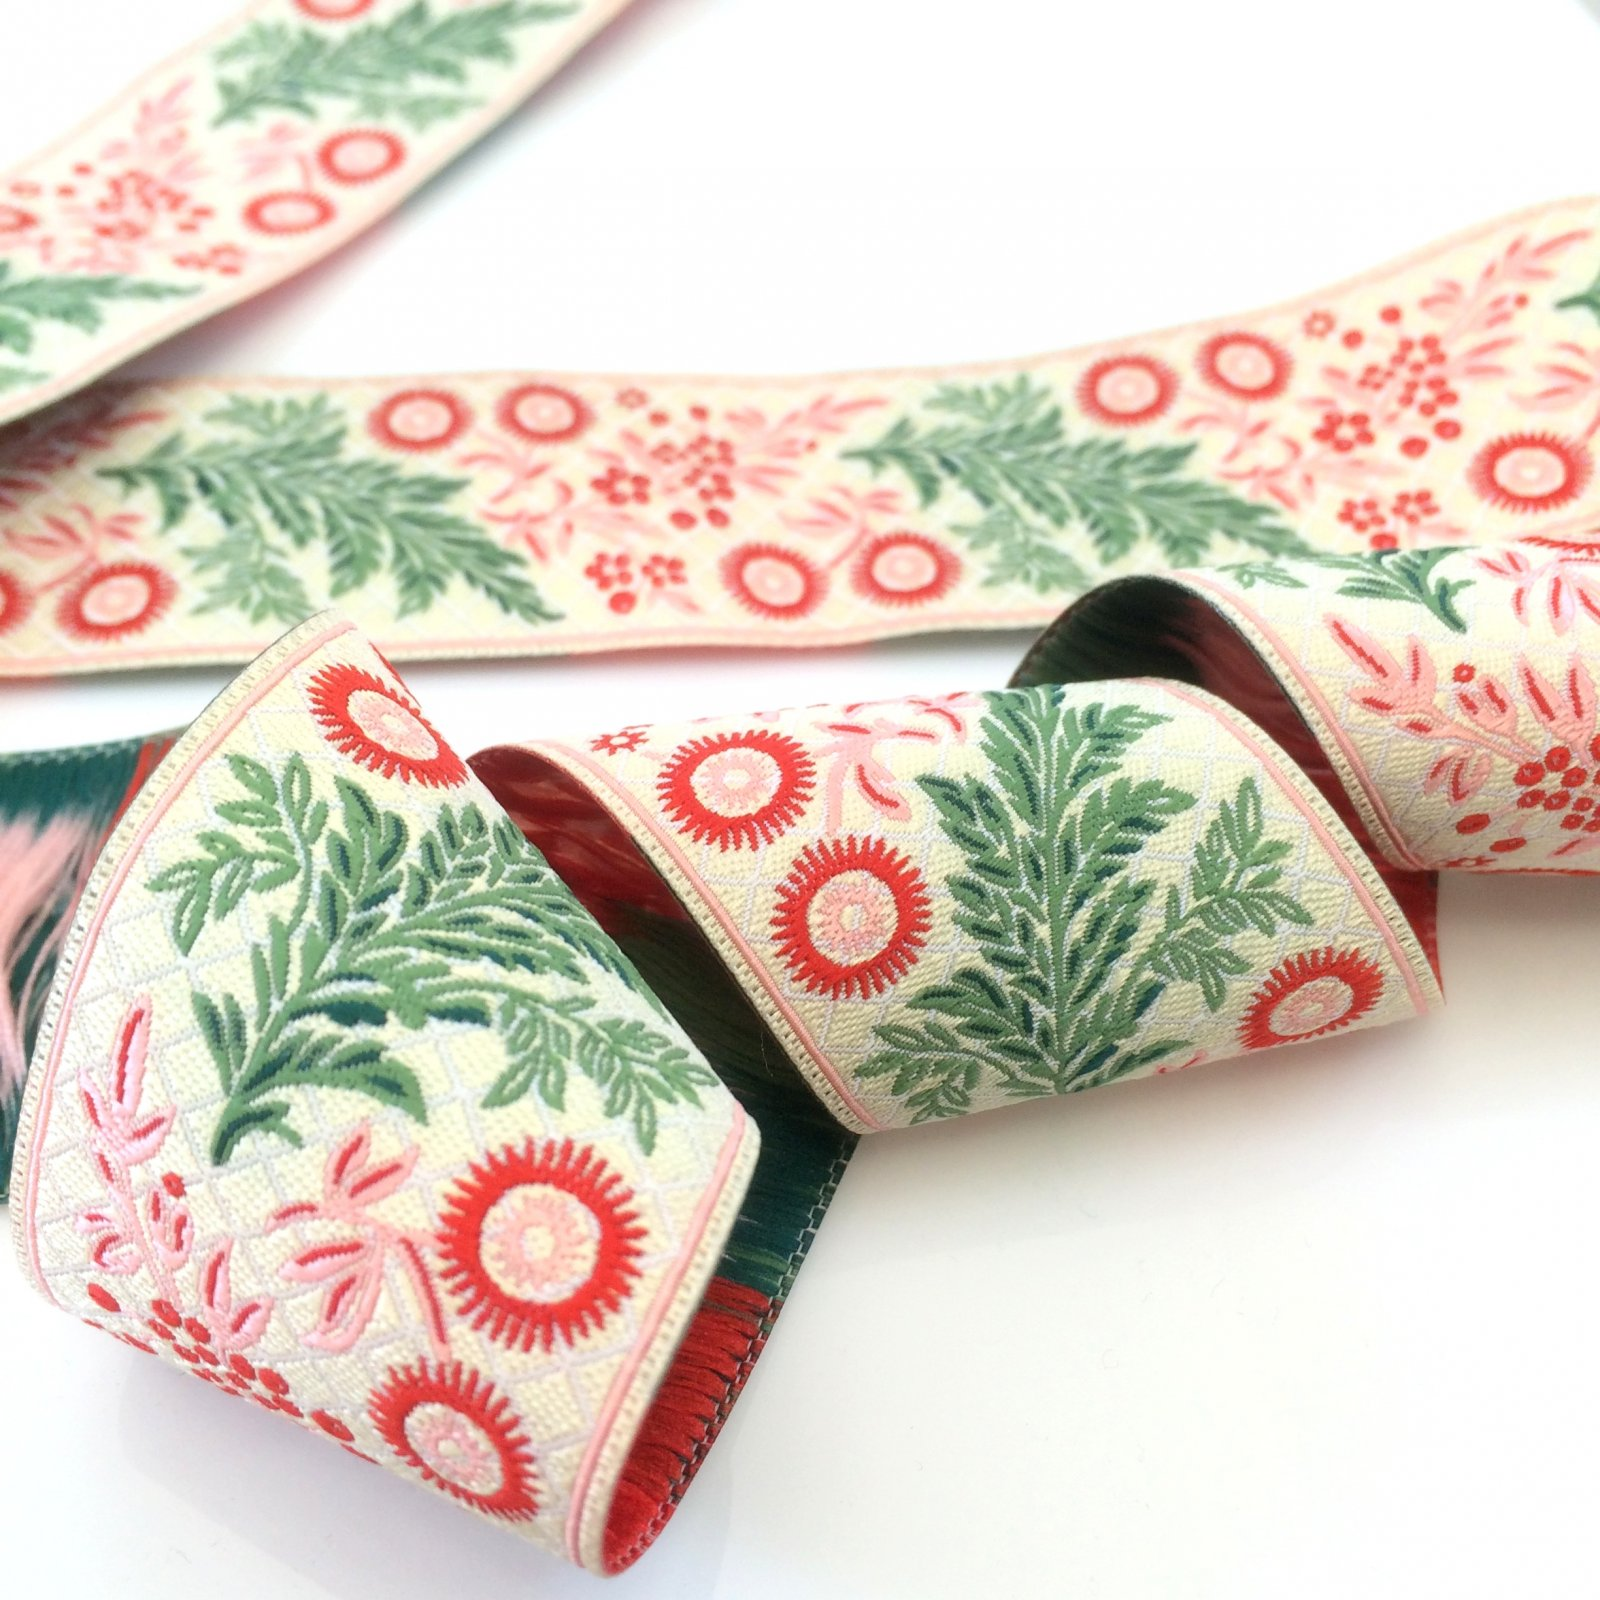 RENAISSANCE RIBBONS - FRENCH GARLAND - RED GREEN ON ECRU 38 MM